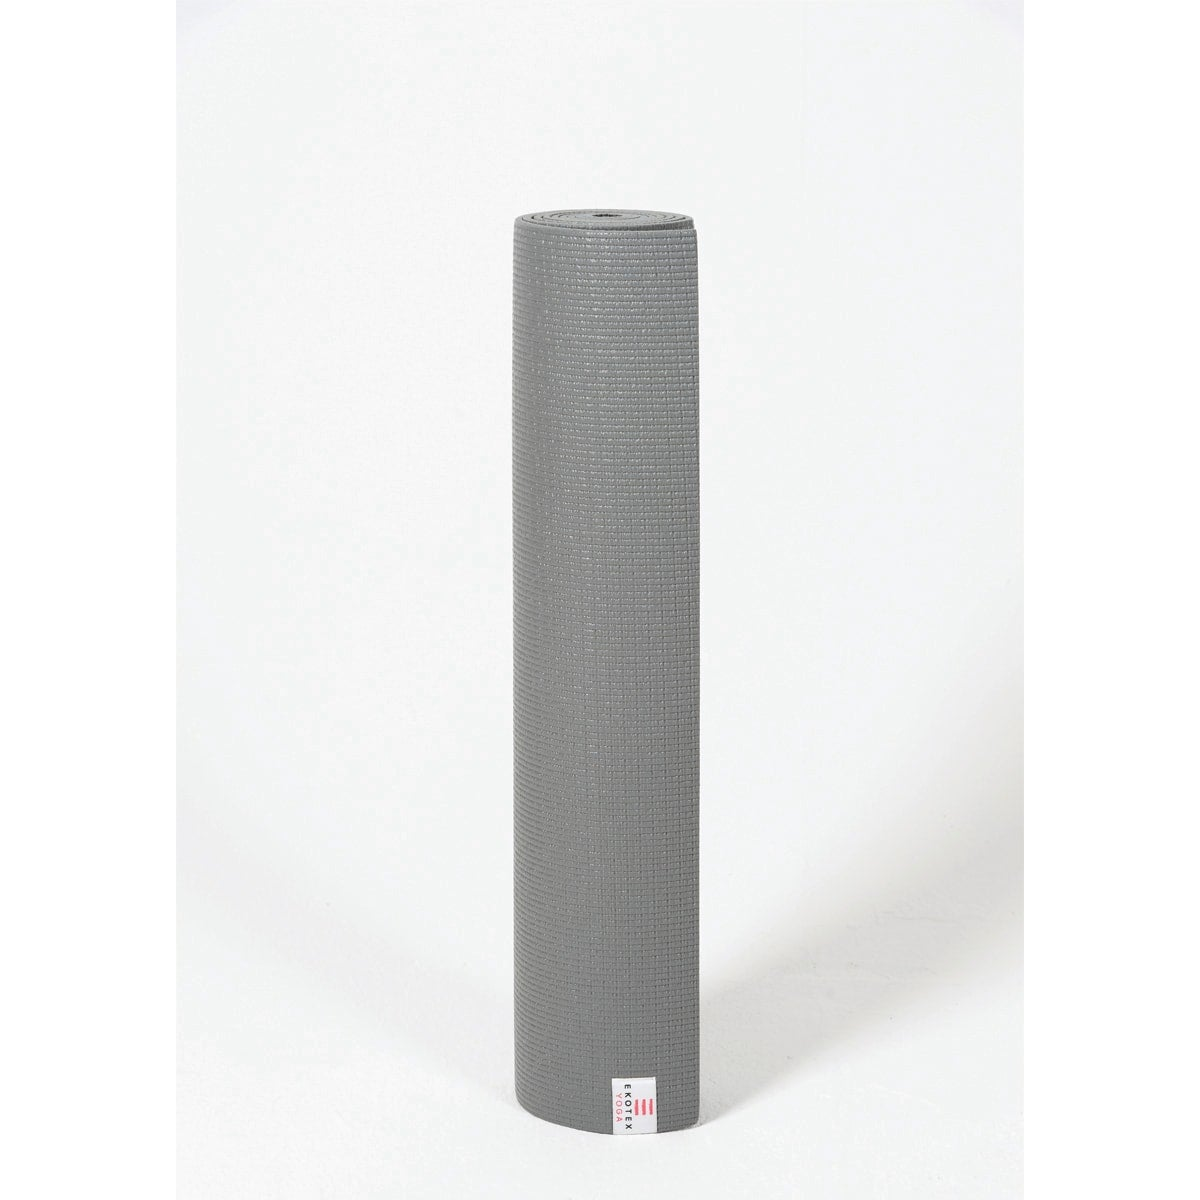 Ekotex Eko Sticky Yoga Mat, colour storm grey, made from PER, thickness 5mm, size 183 cm x 61 cm, eco-friendly material, simple, lightweight